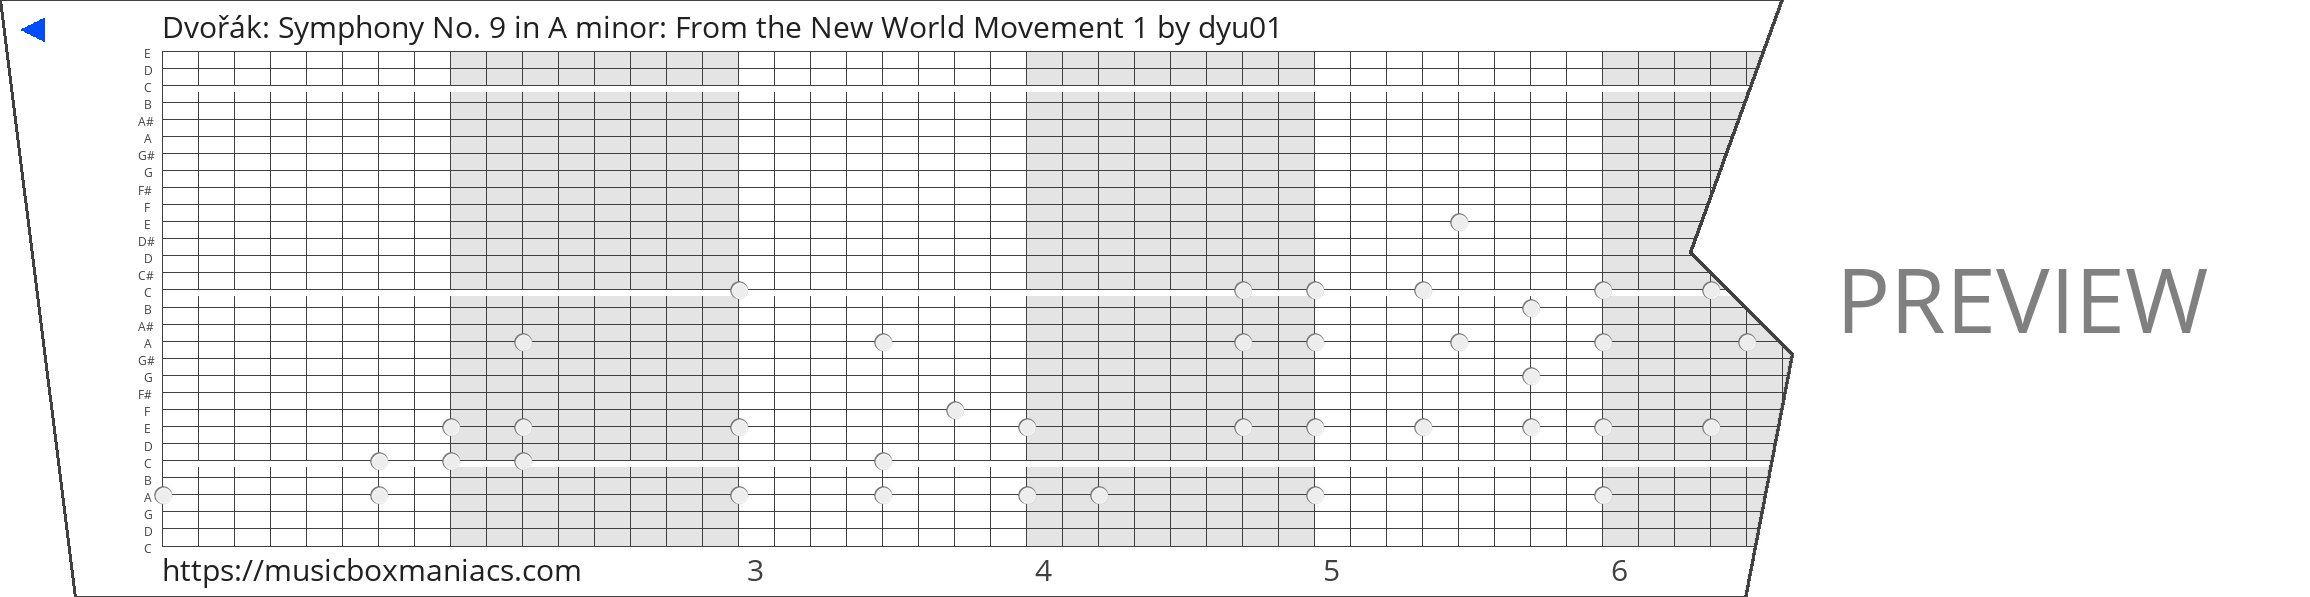 Dvořák: Symphony No. 9 in A minor: From the New World Movement 1 30 note music box paper strip